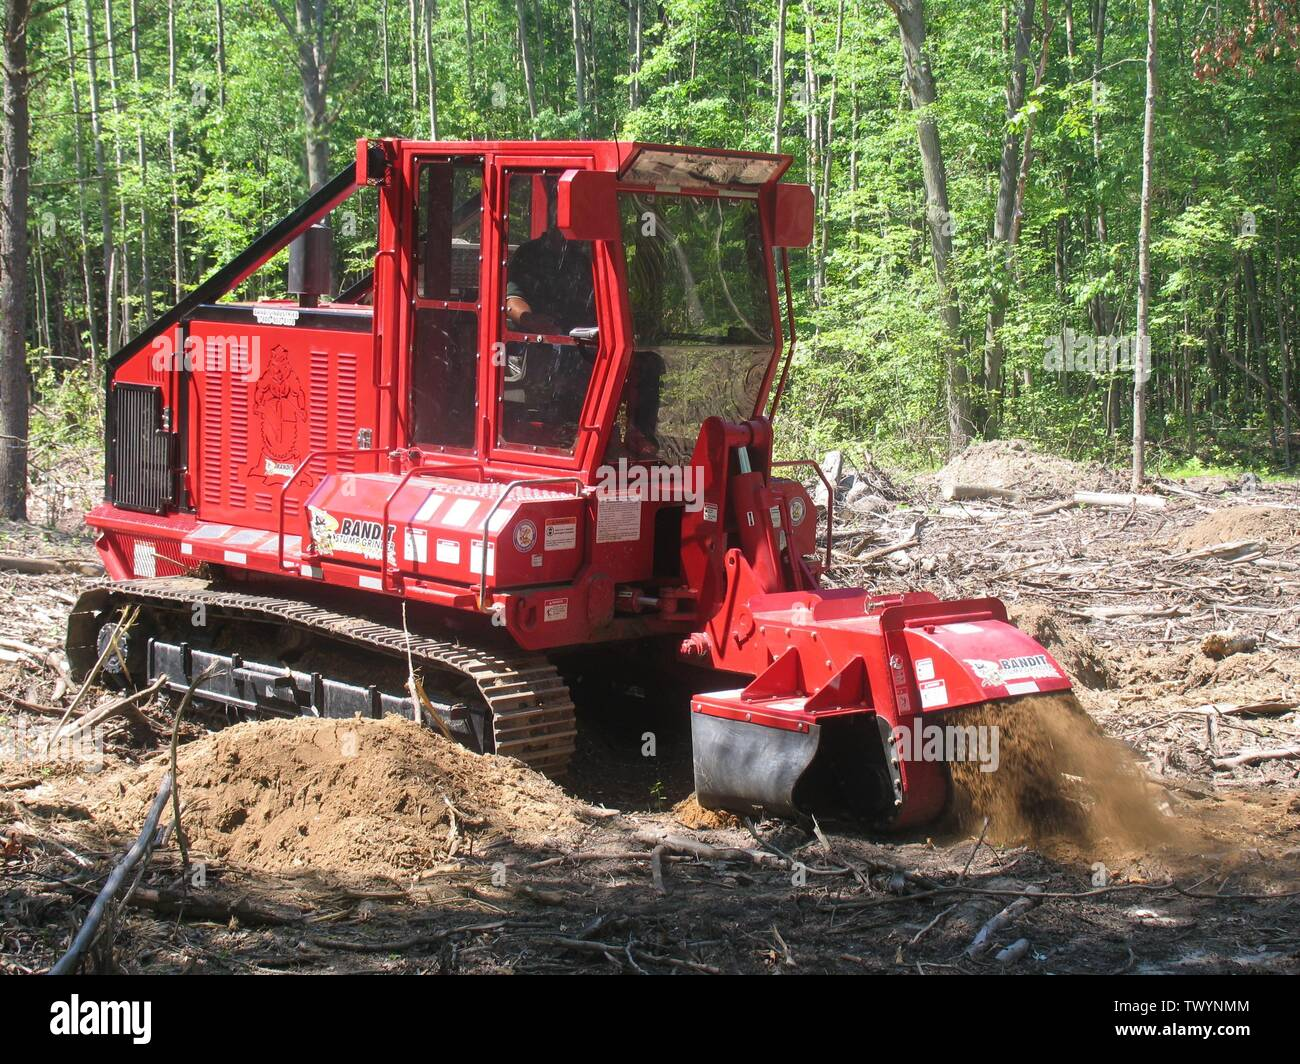 'English: Bandit Industries model 4000T, land clearing stump grinder 275 HP; before 11 December 2006 date QS:P,+2006-12-11T00:00:00Z/7,P1326,+2006-12-11T00:00:00Z/11; English: Transferred from en.wikipedia.org [1]: 2006-12-11 03:29 . . Reluskie . . 3,264×2,448 (1.65 MB); Reluskie; ' - Stock Image